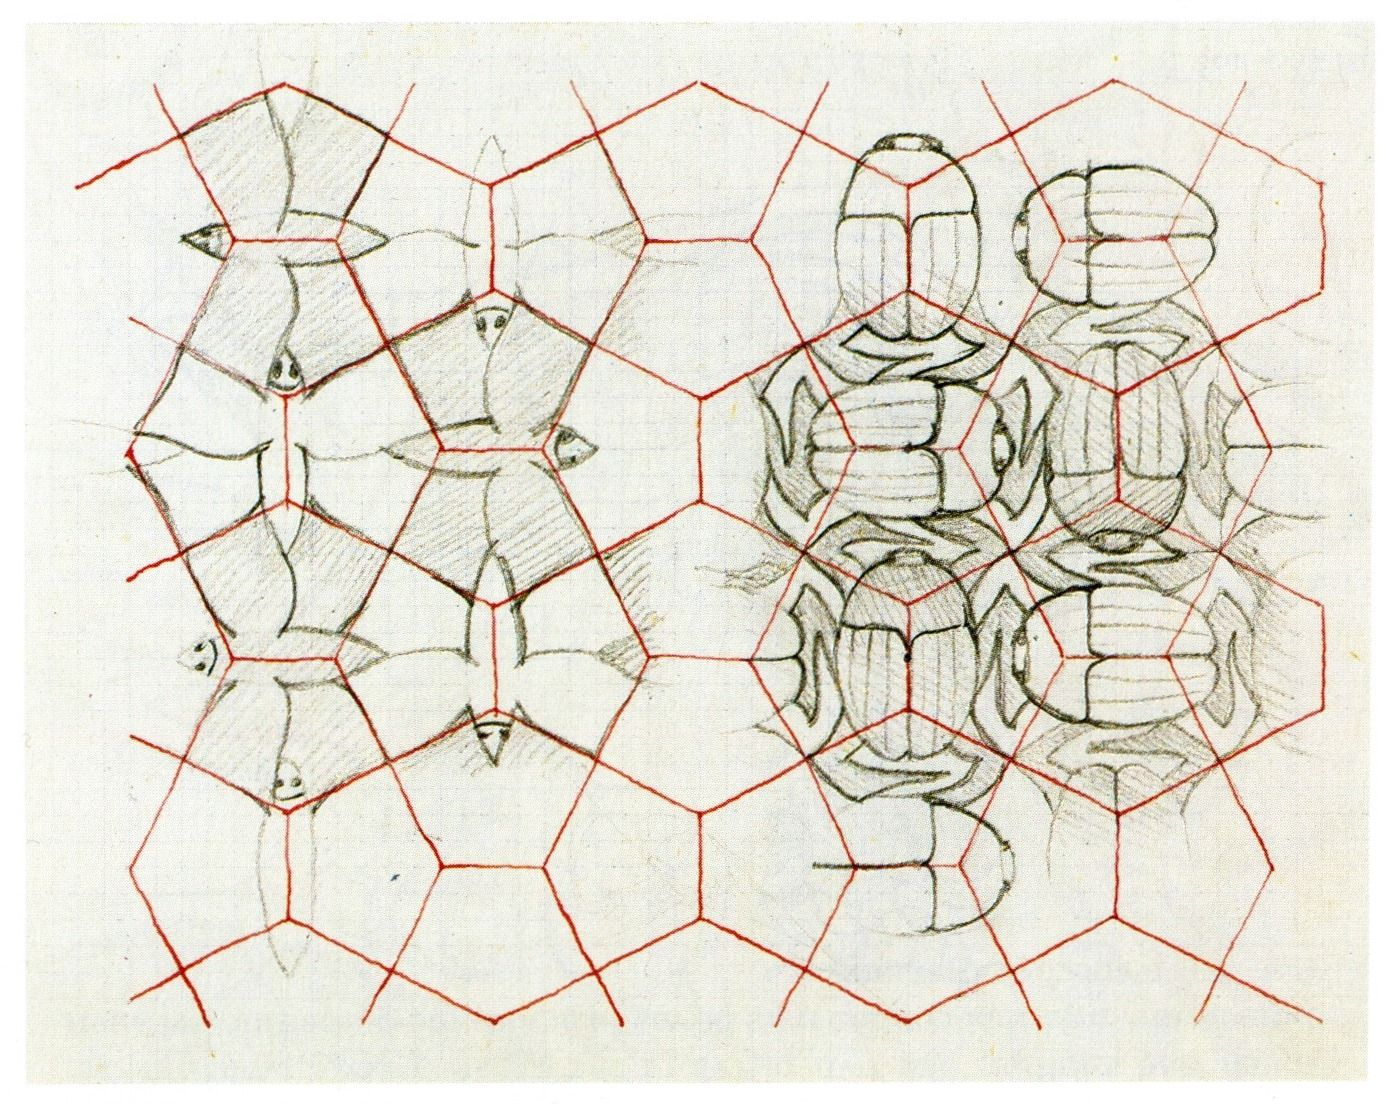 Scarabs and butterflies emerge from a grid of pentagons